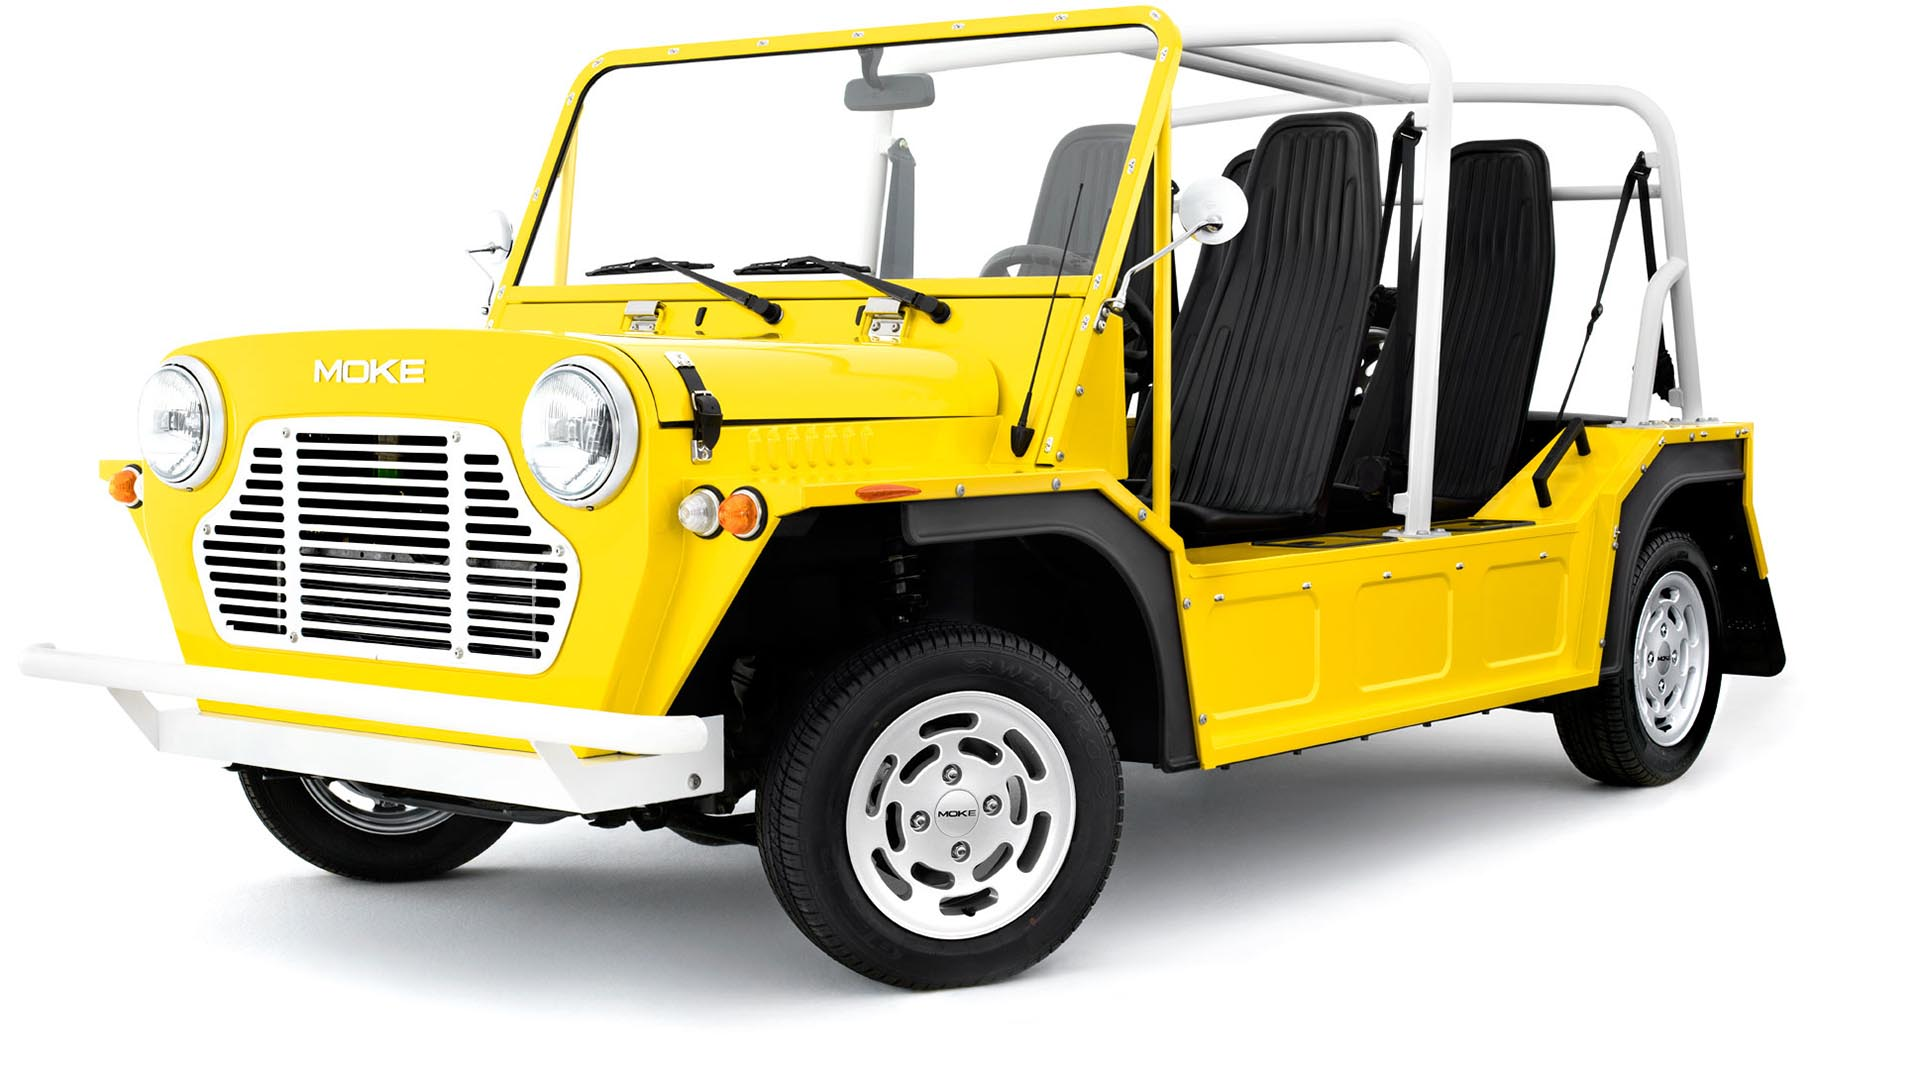 The trusty Mini Moke set to return but in very small numbers and more expensive.